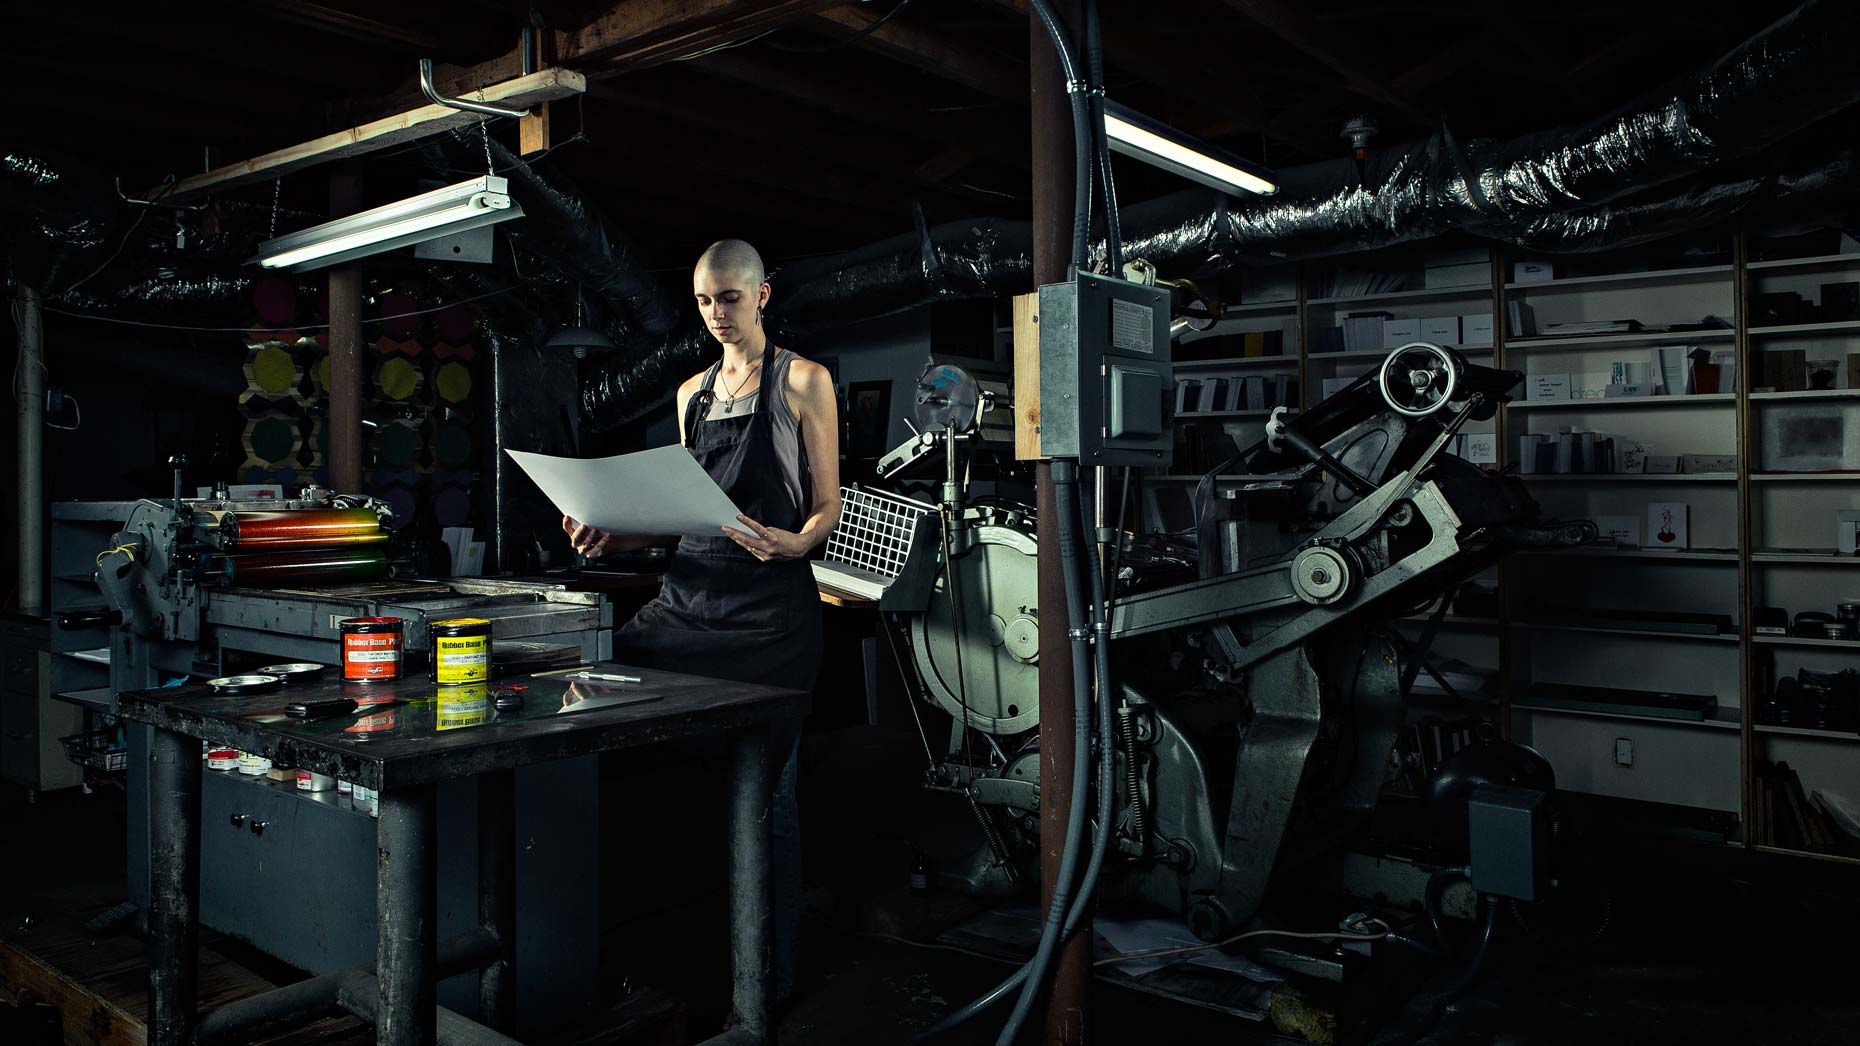 Portrait of letterpress artist examining photography print, by Atlanta photographer